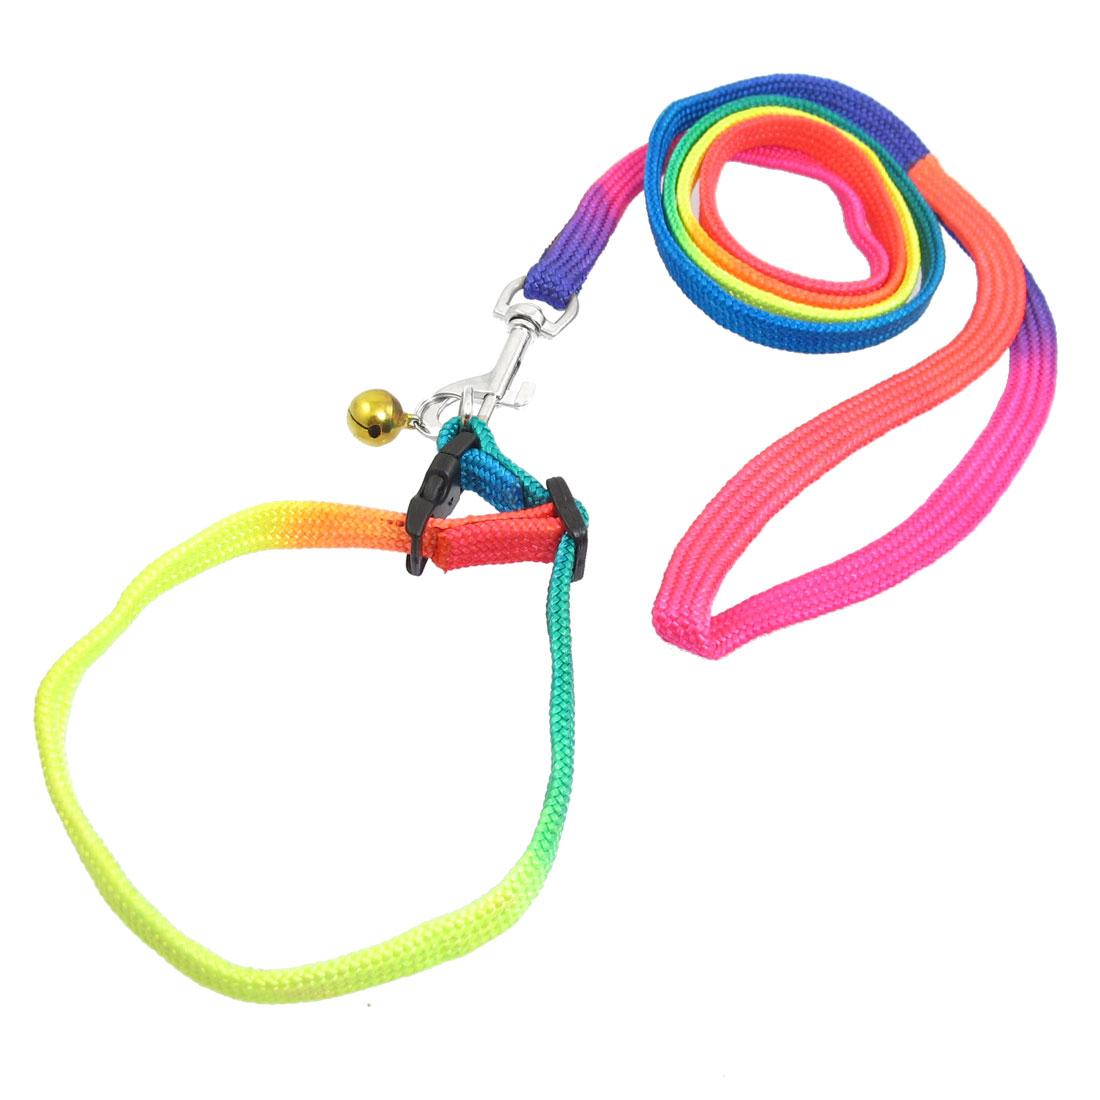 Gold Tone Jingle Bell Decor Rainbow Nylon Adjustable Dog Leash 1.36M w Trigger Hook